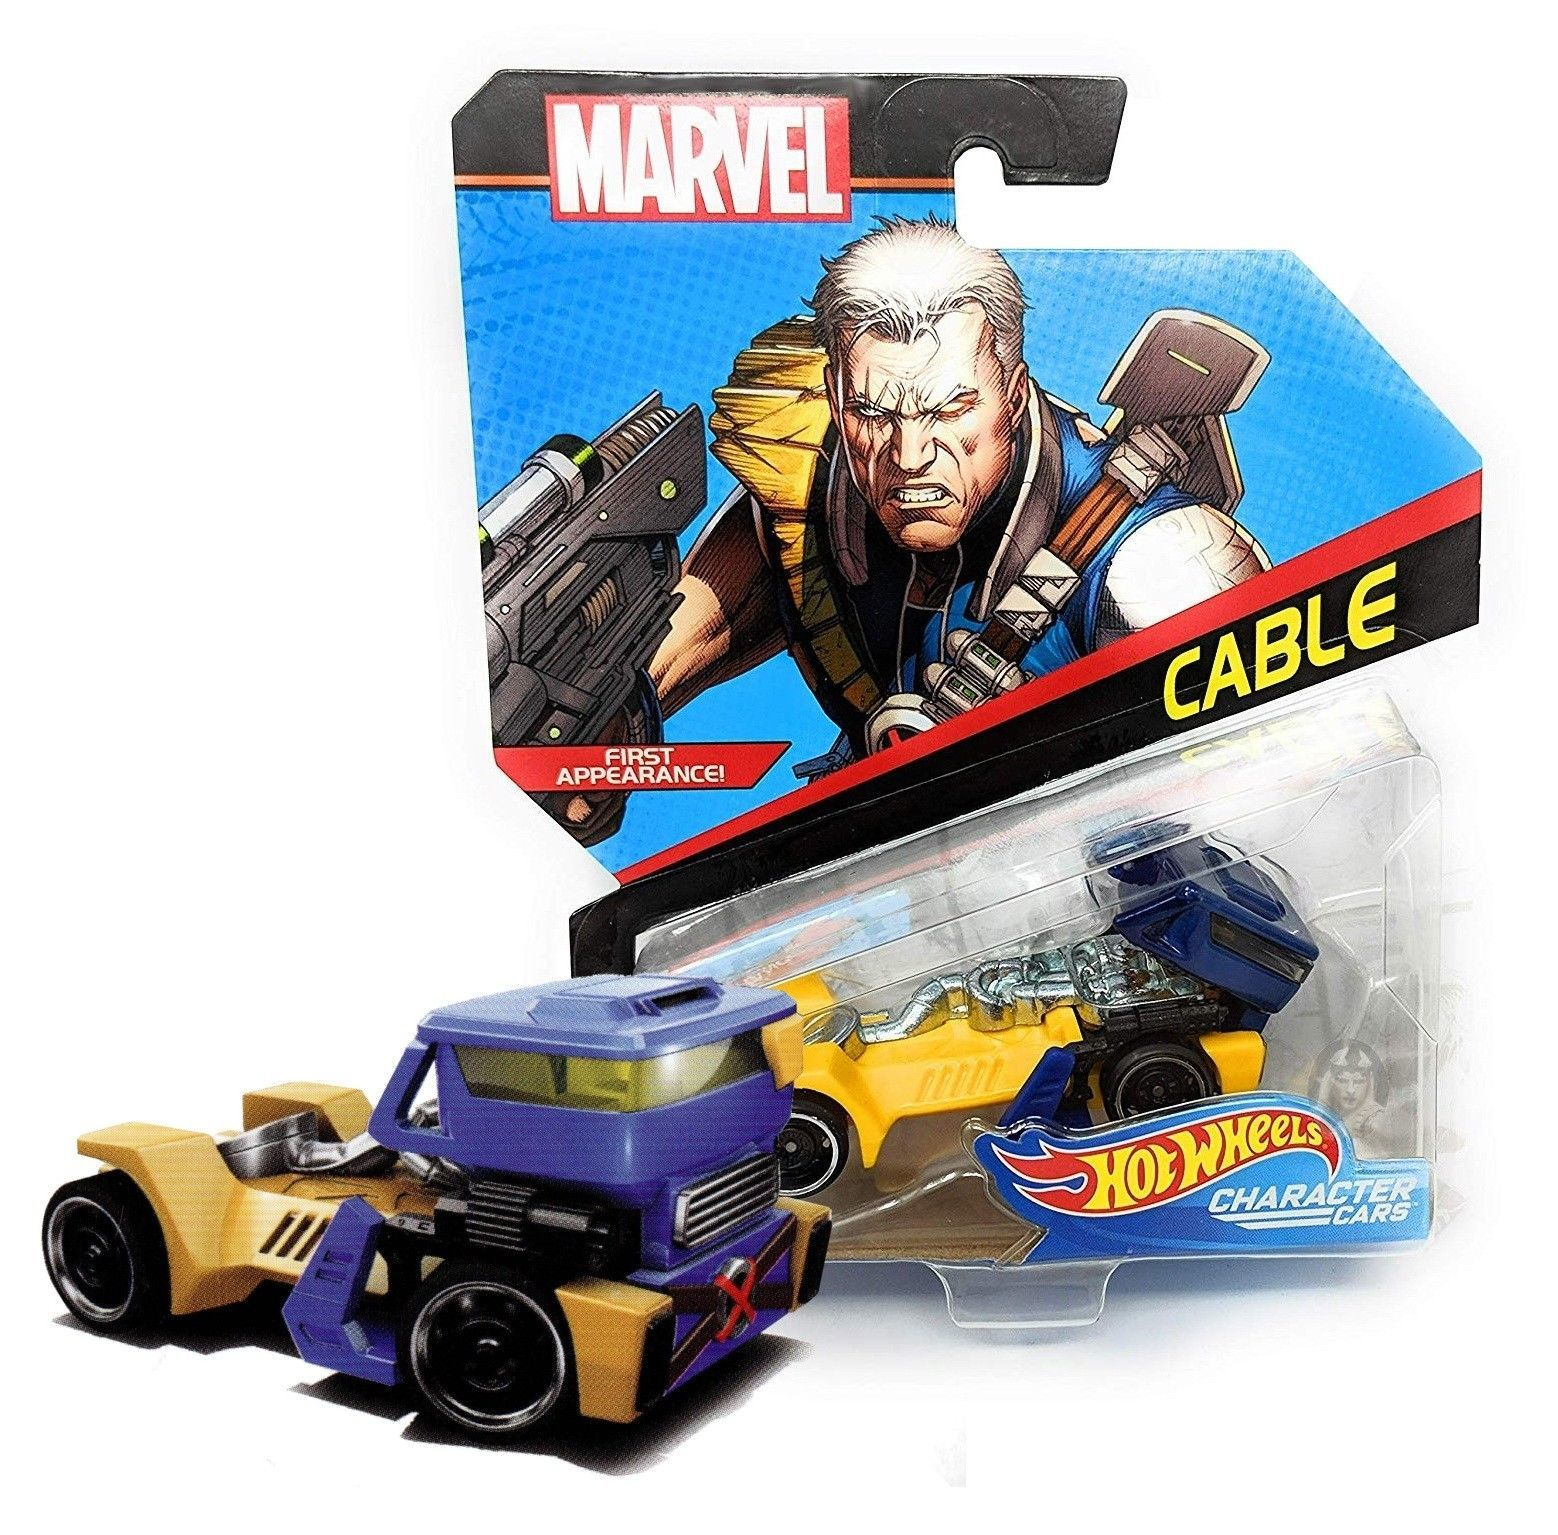 Hot Wheels Marvel Cable Character Cars Mint on Card